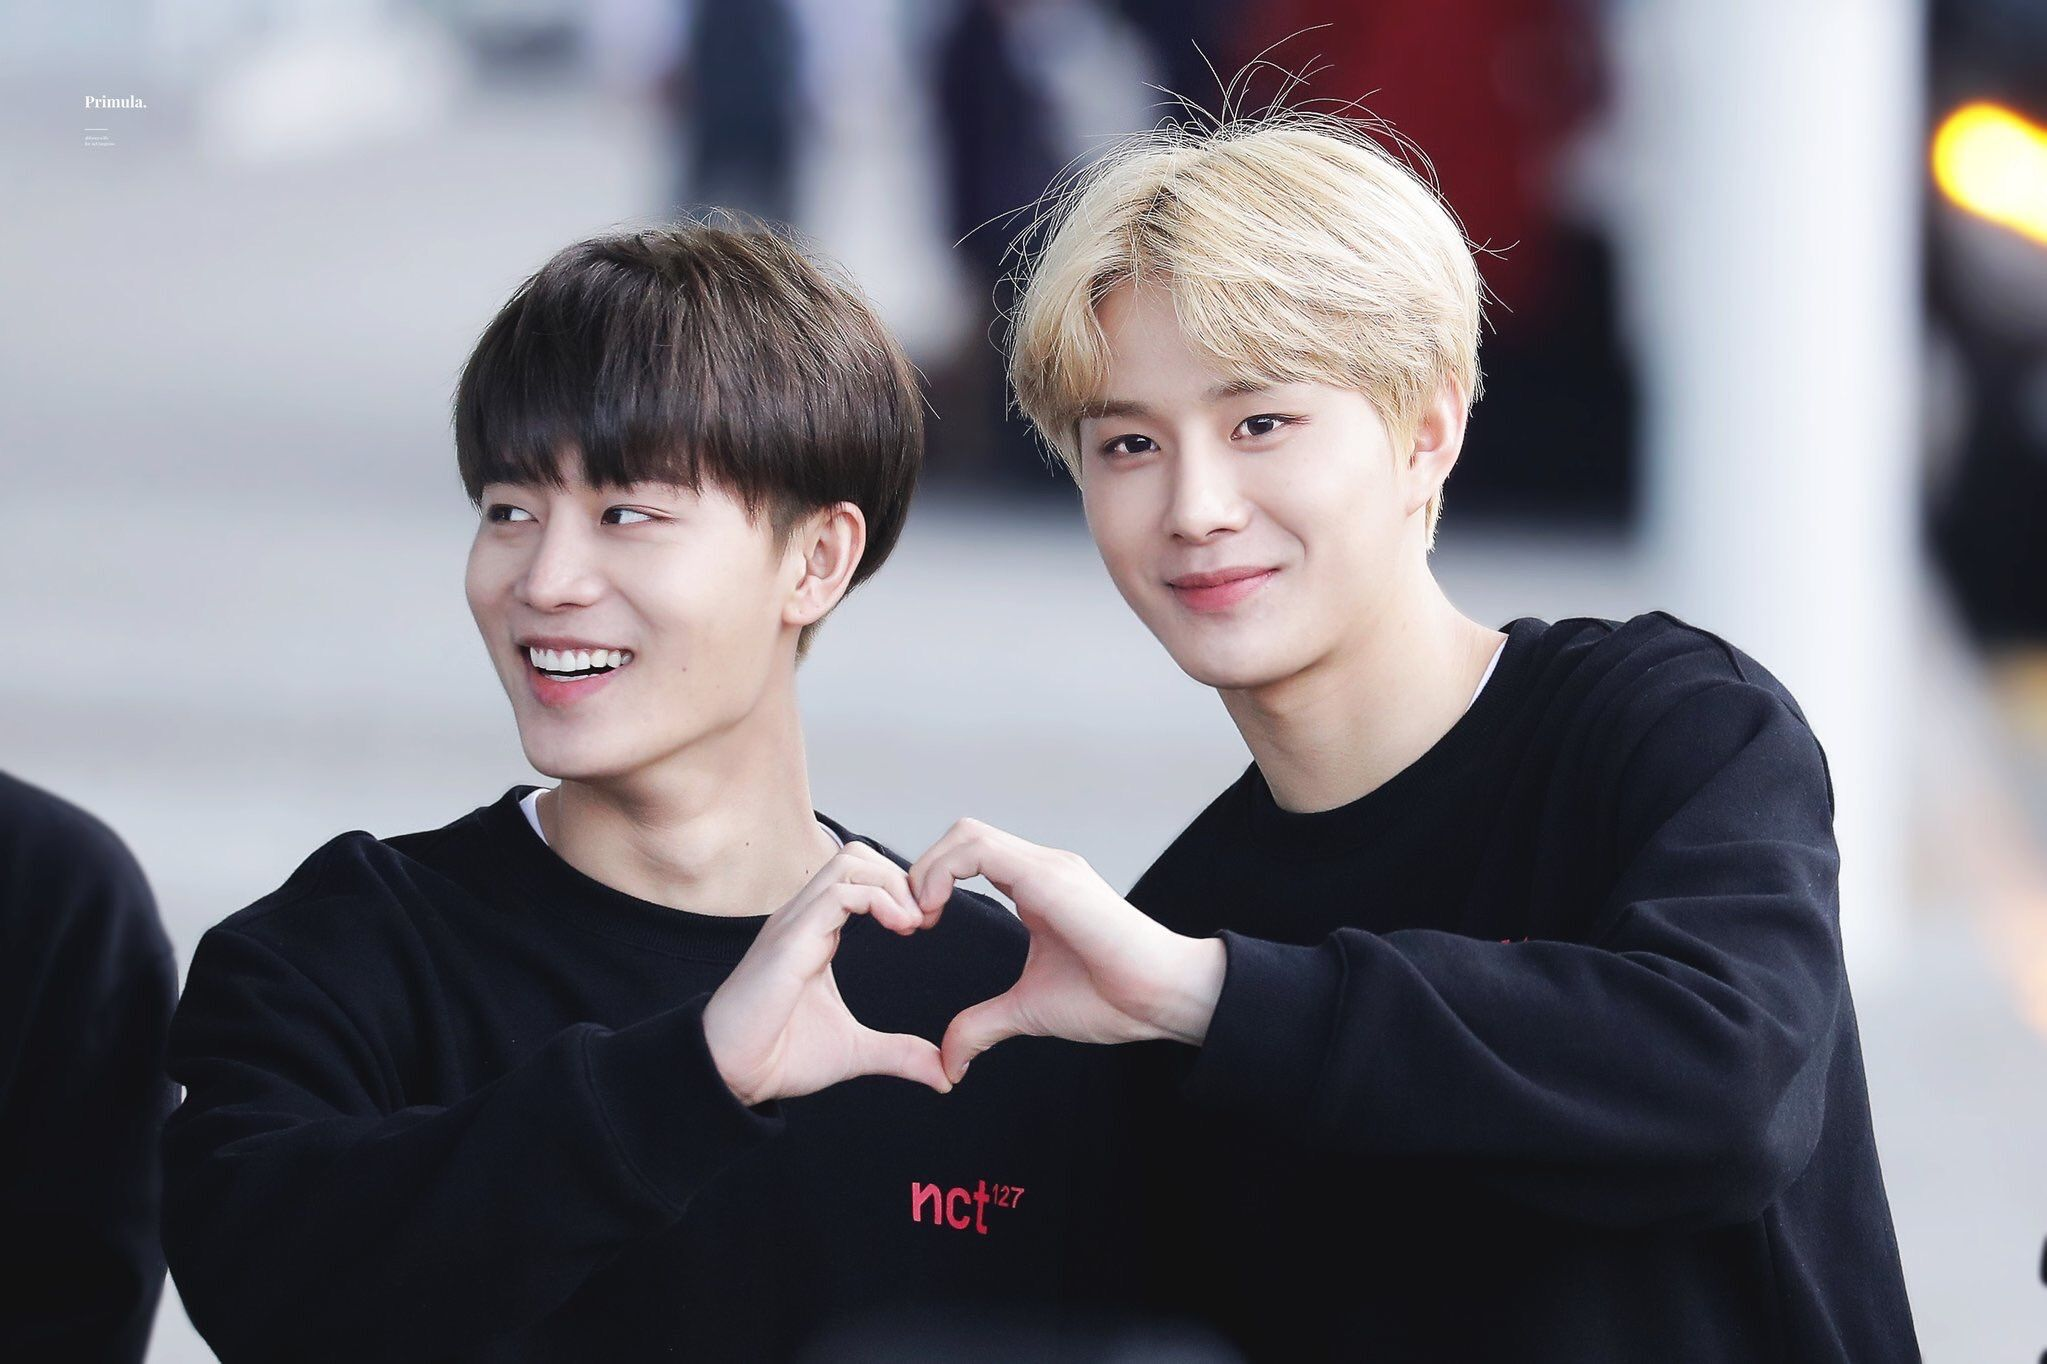 nct taeil jungwoo